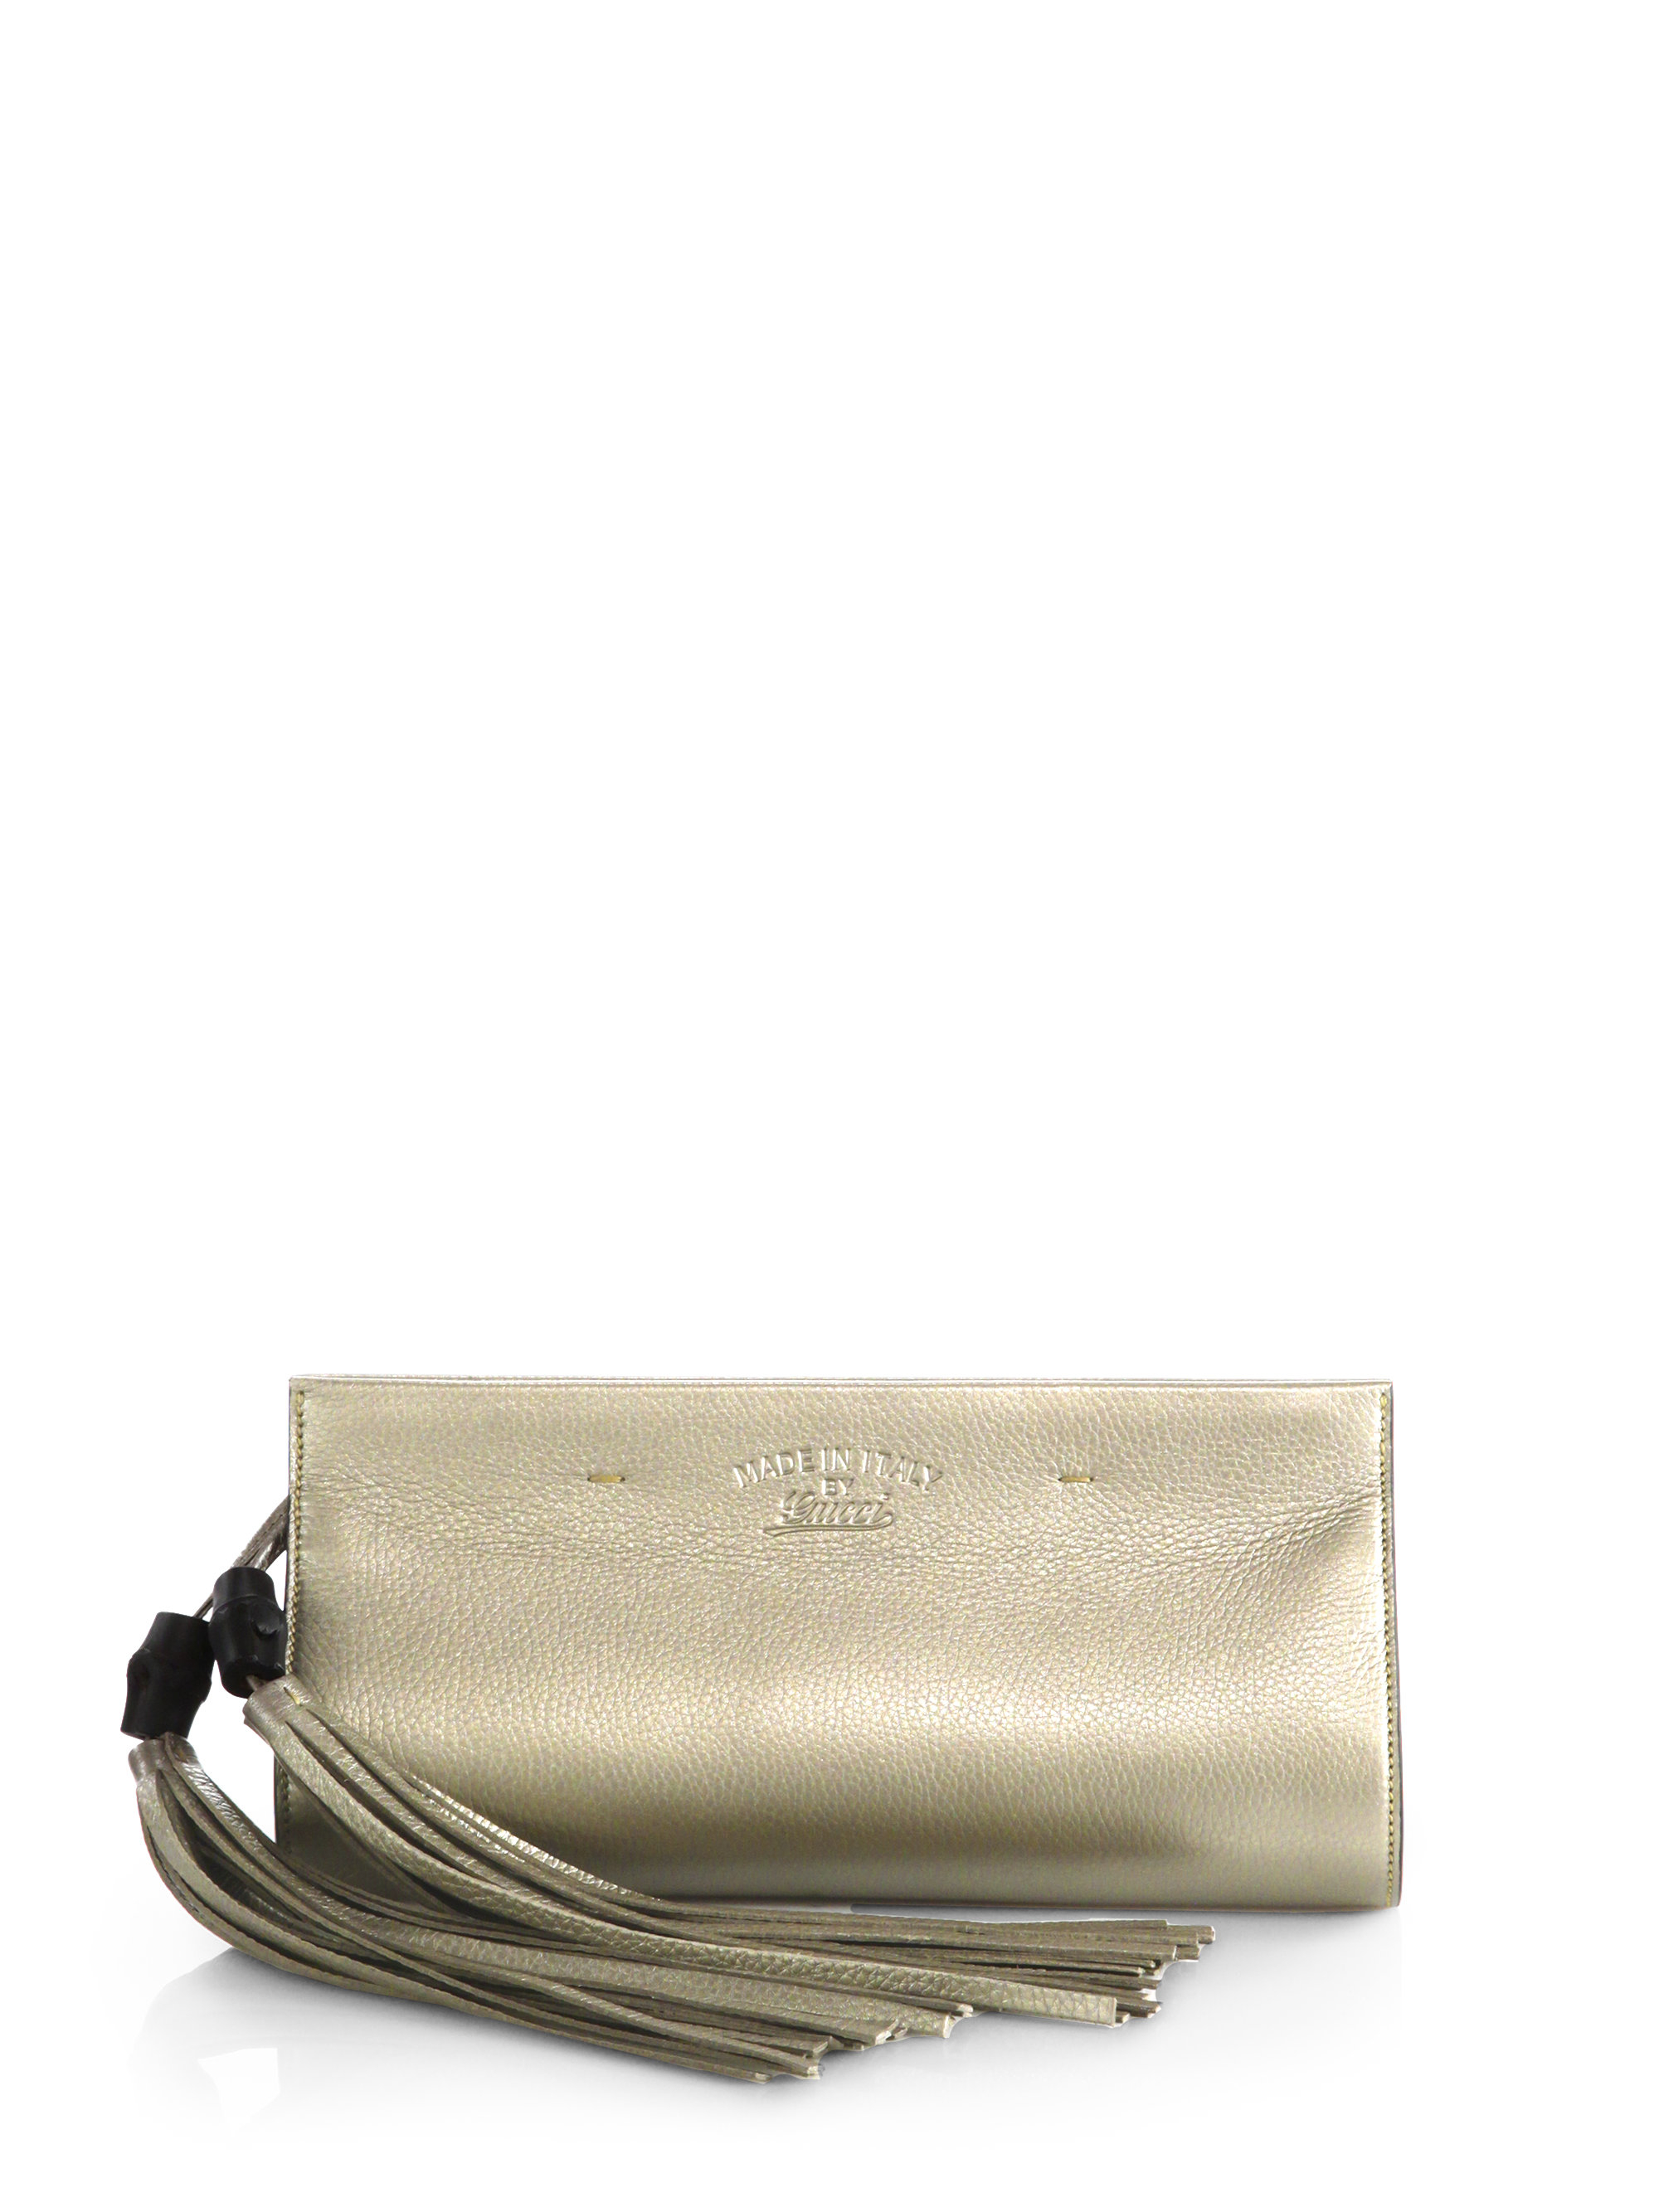 10b2889ac19 Gallery. Previously sold at  Saks Fifth Avenue · Women s Metallic Clutch  Bags